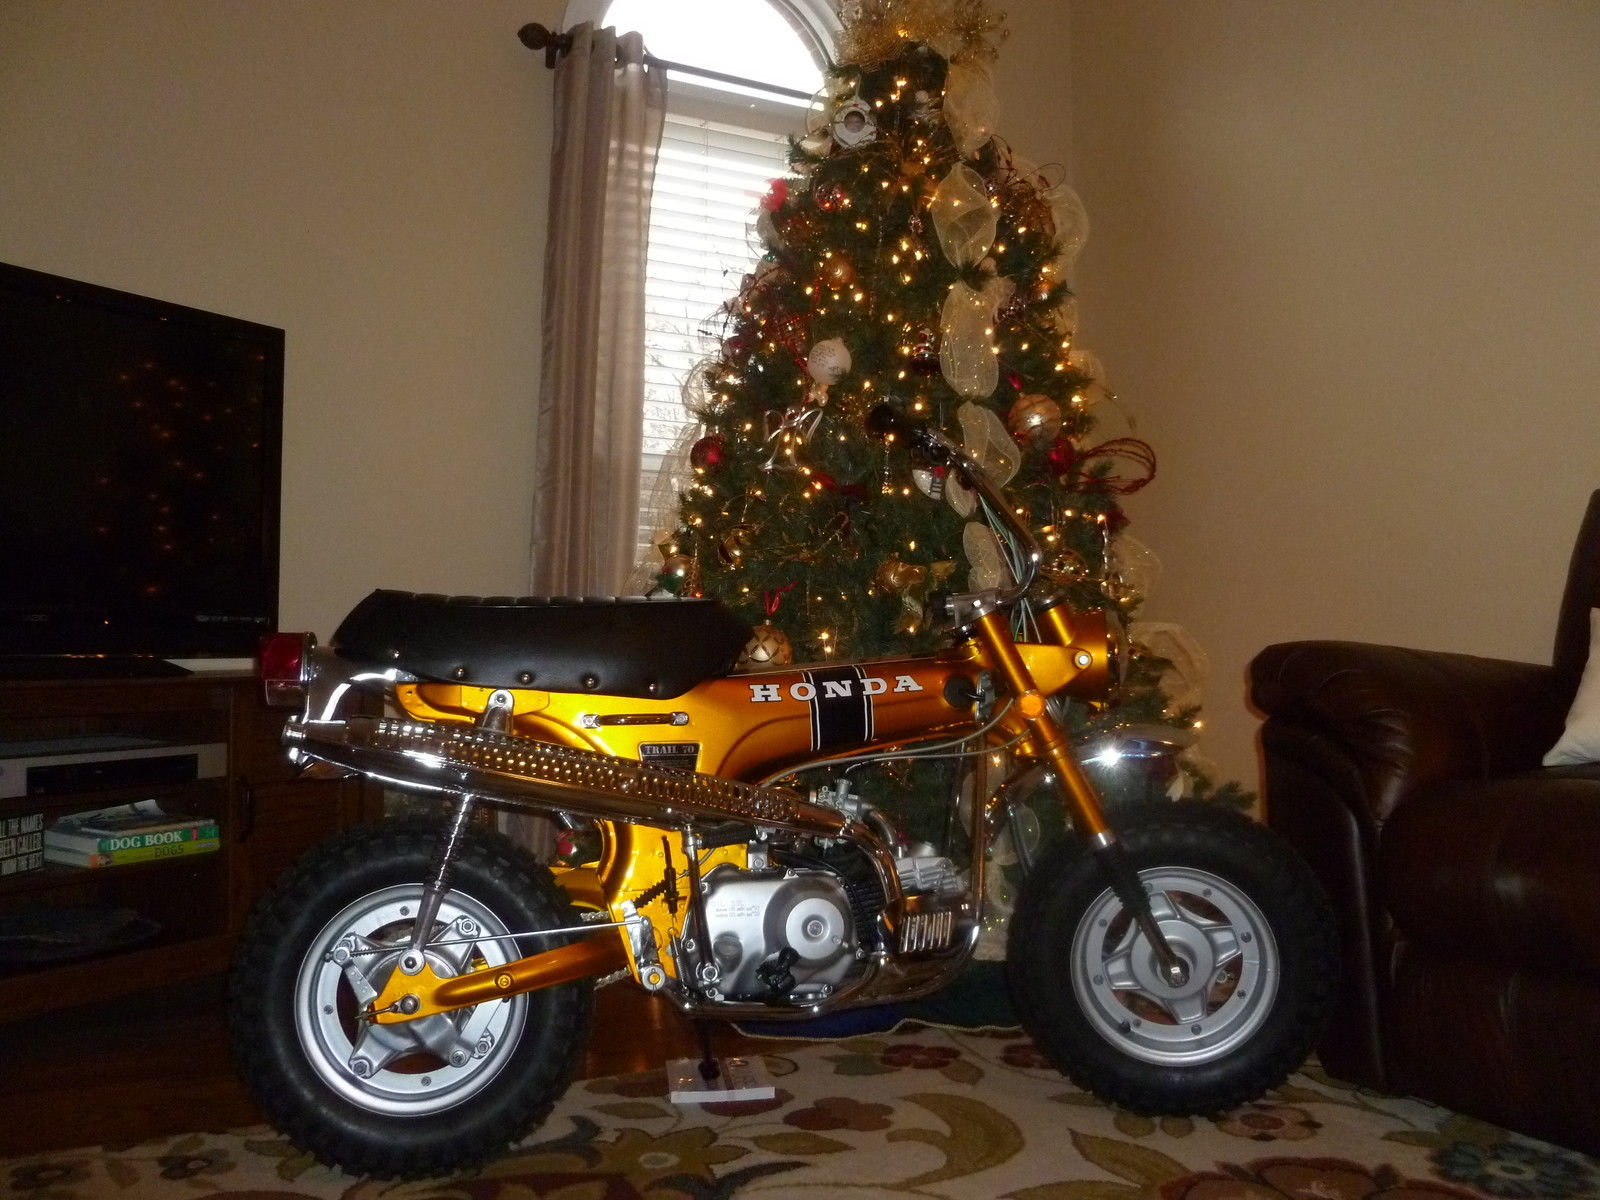 Honda Ct70 Ko Candy Gold 3 Speed Like New Restored And Ready To Ship 1970 Battery Ct